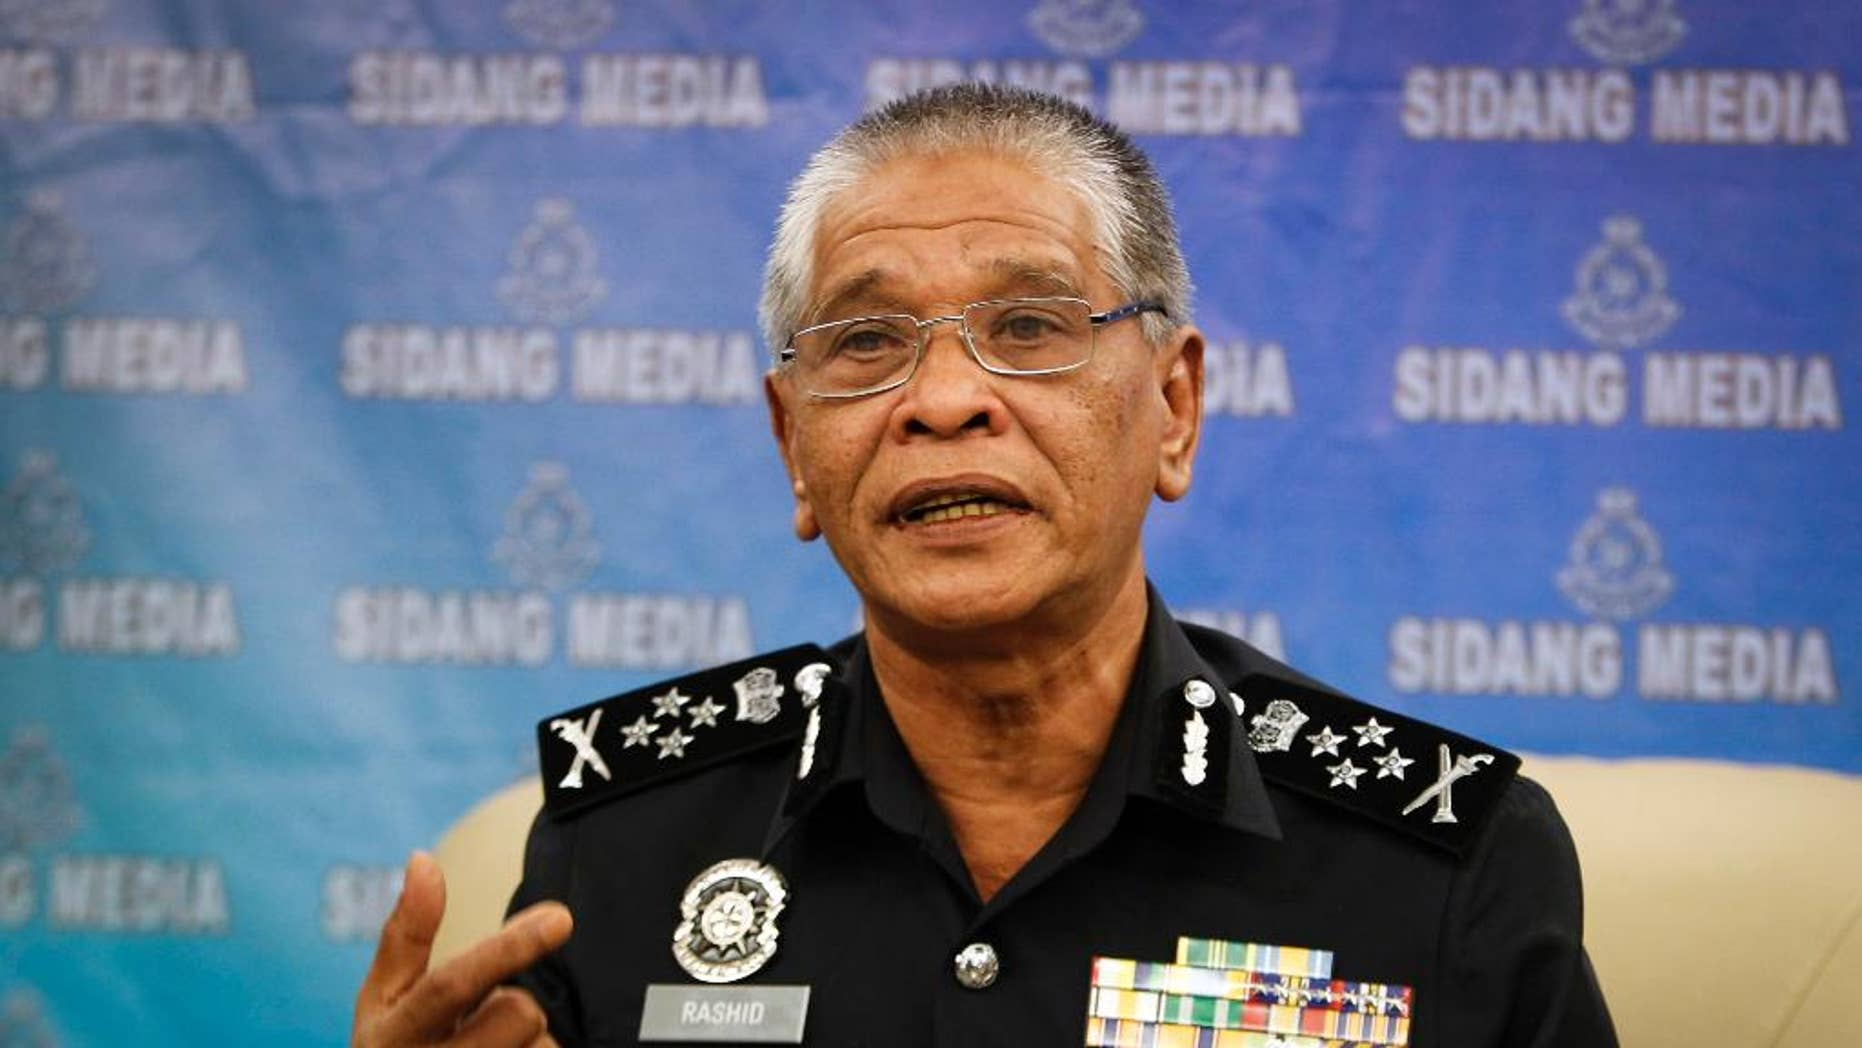 Malaysian police Deputy Inspector Gen. Noor Rashid Ibrahim gestures as he speaks during a press conference at the police headquarters in Kuala Lumpur, Malaysia Wednesday, Sept. 23, 2015. He says eight people, including four believed to be ethnic Uighurs, have been detained in connection with last month's bombing of a shrine in Bangkok that killed 20 people. (AP Photo/Joshua Paul)